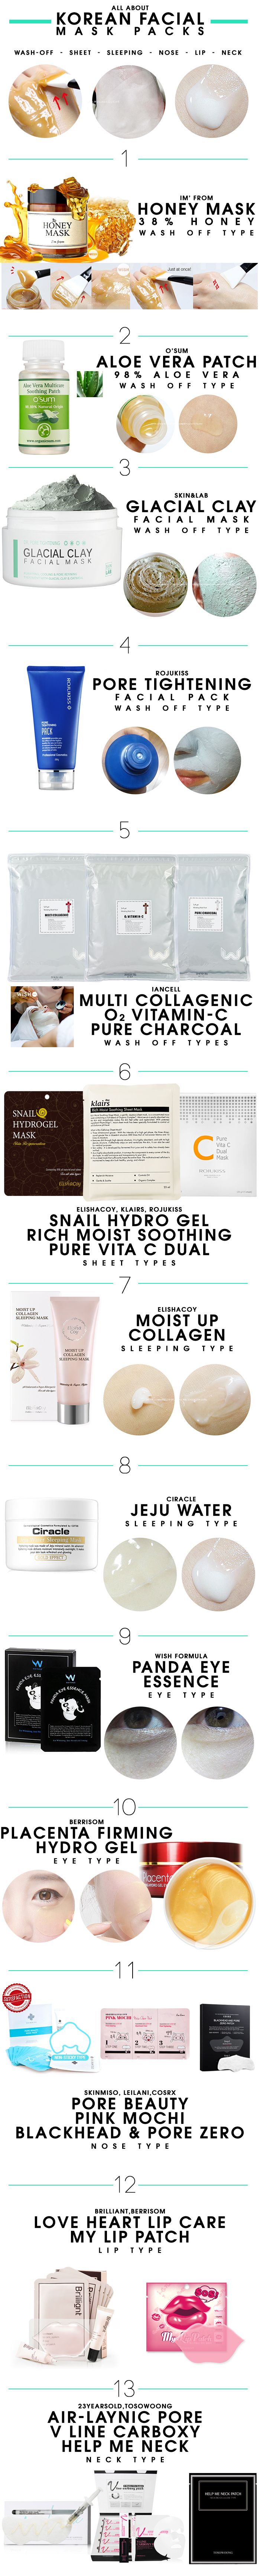 All about Korean facial mask packs from wash-off to sleeping packs and more…